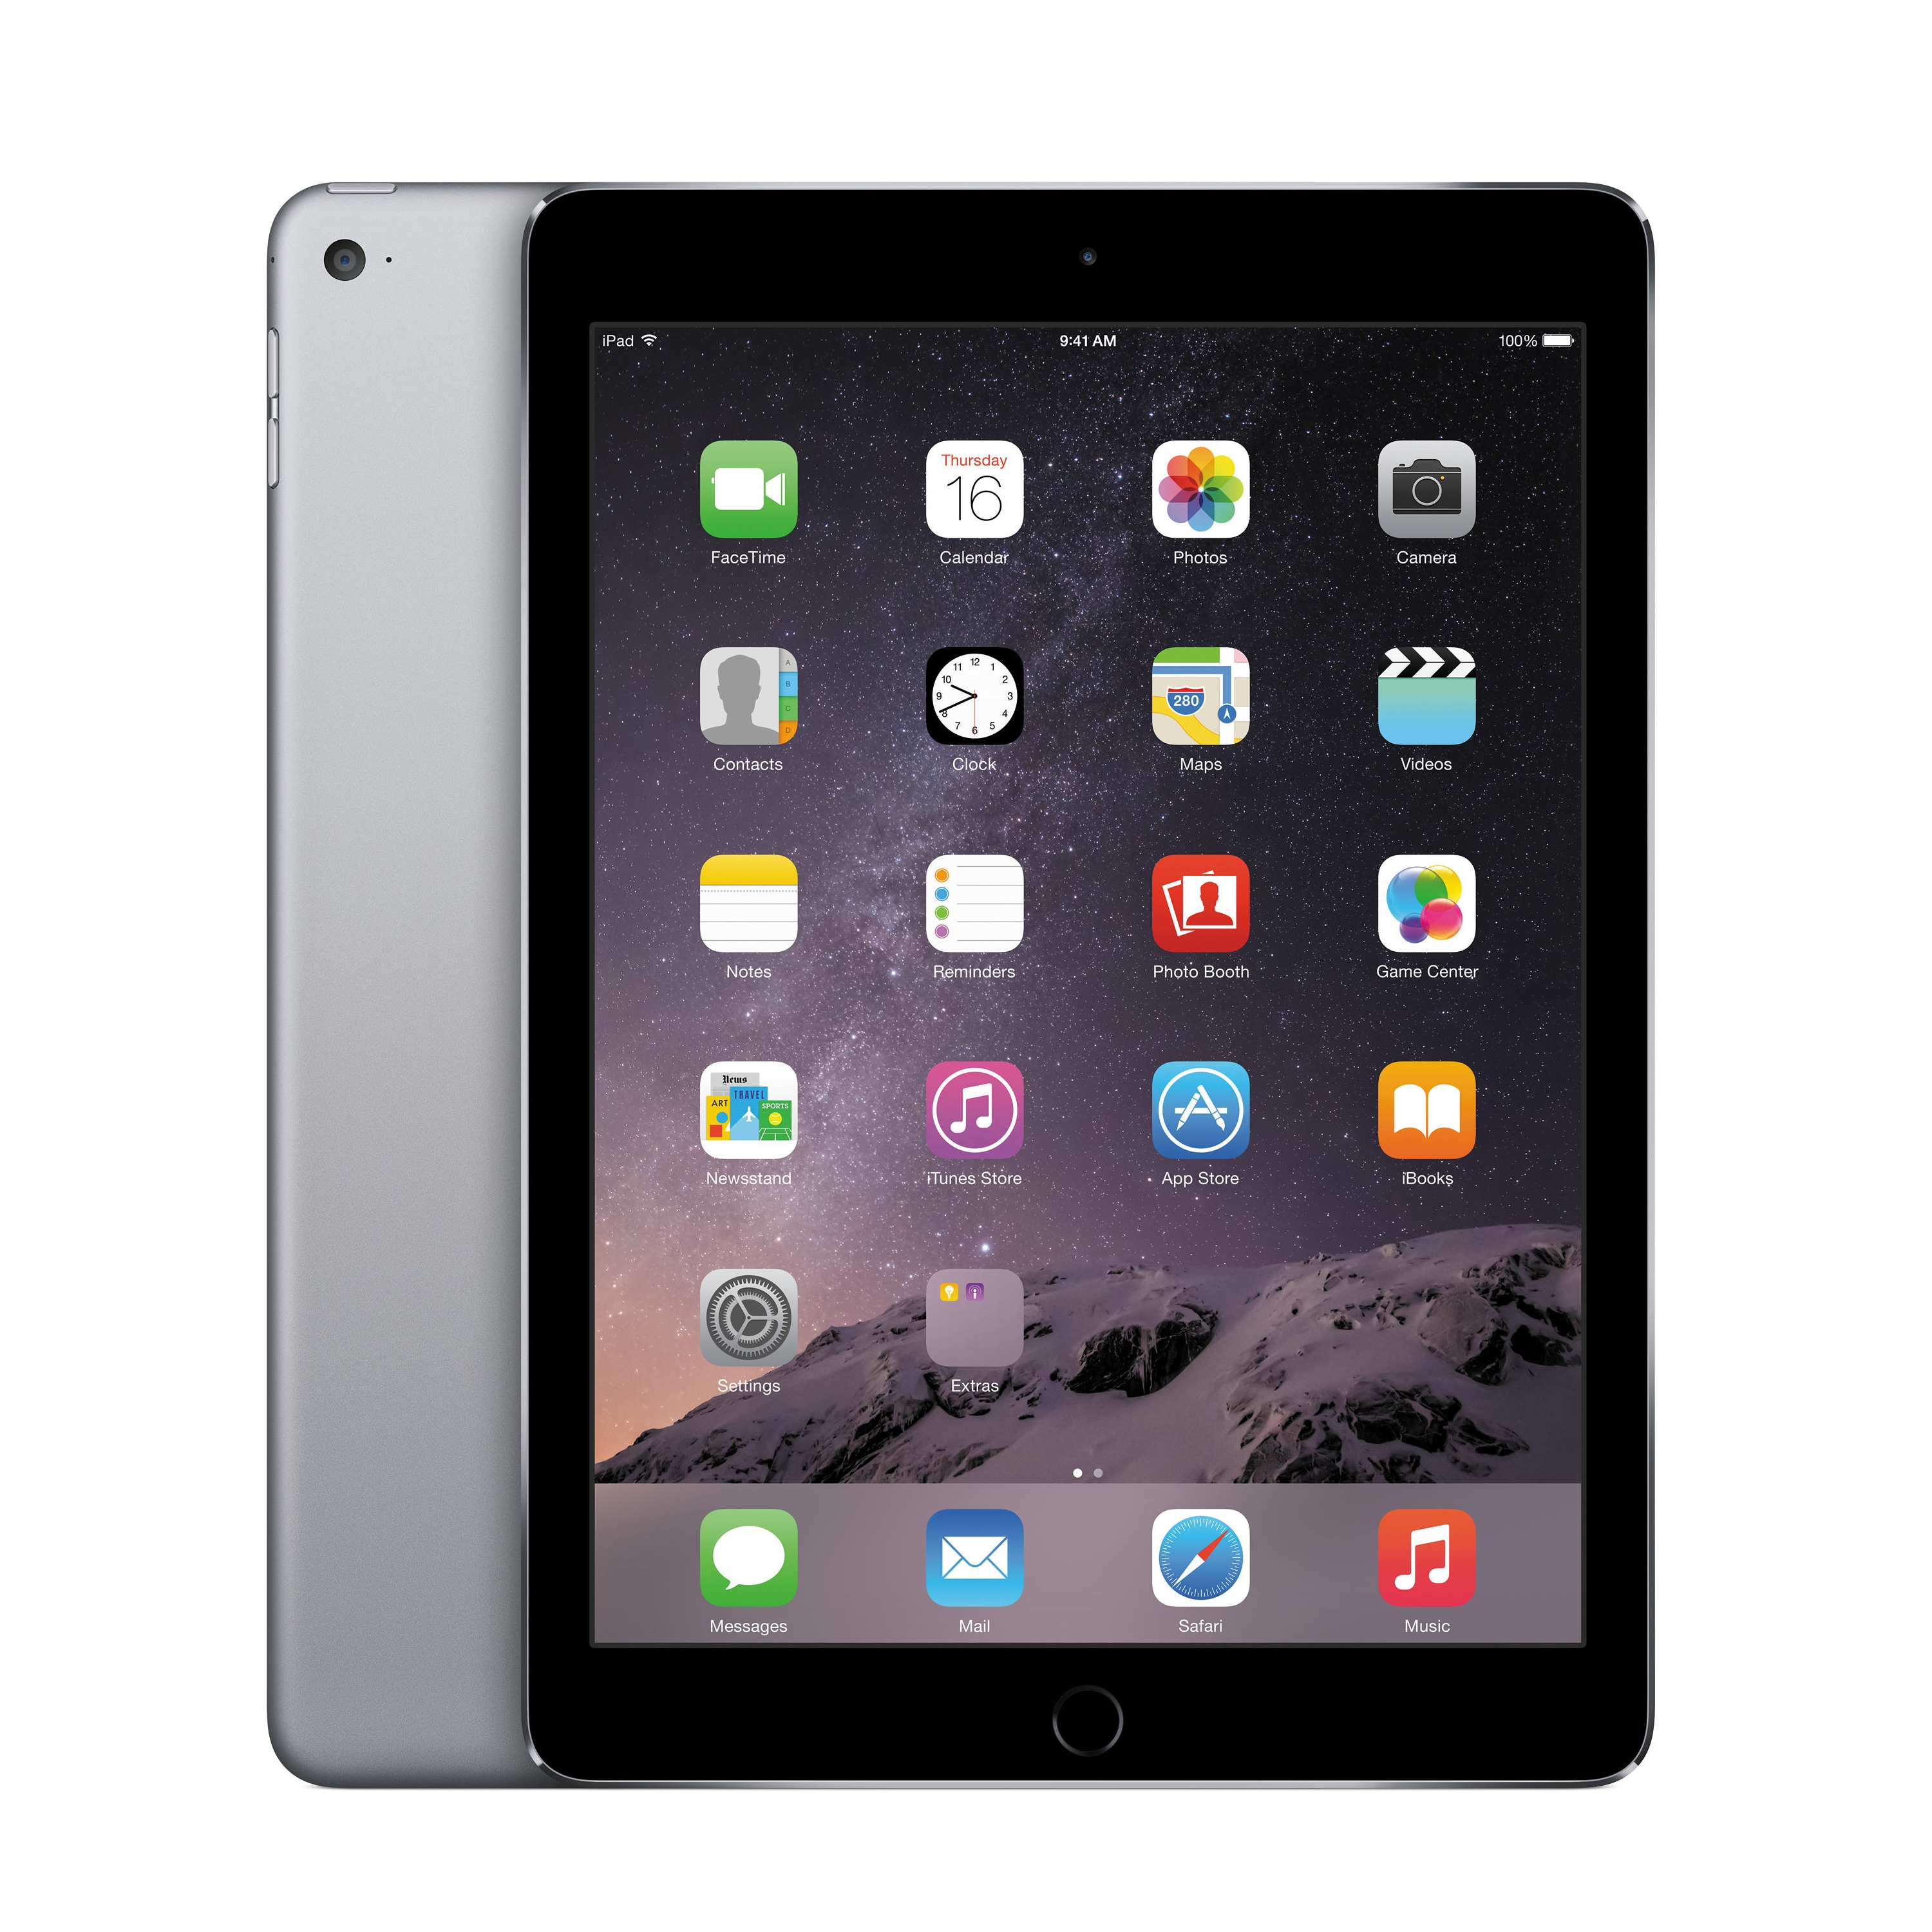 a24405a6e59 There were lots of iPad bargains on Black Friday 2016 including £40 off the  iPad Air